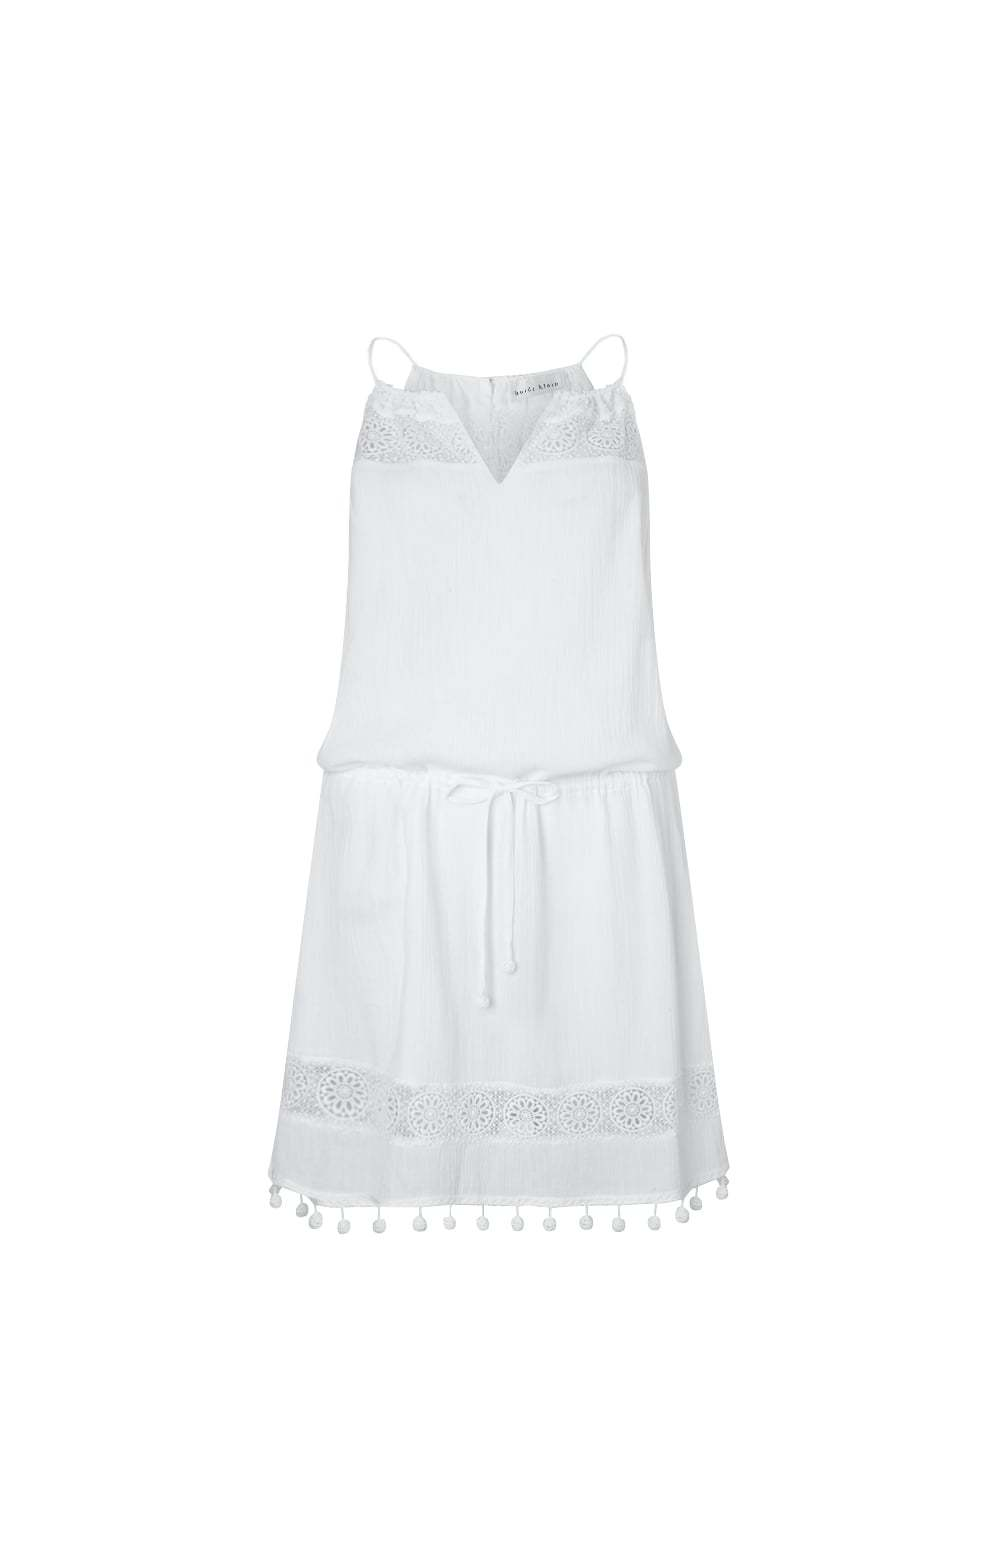 White Long Island Crochet Day Dress Size: - length: mid thigh; neckline: v-neck; fit: fitted at waist; sleeve style: sleeveless; style: sundress; waist detail: belted waist/tie at waist/drawstring; predominant colour: white; occasions: casual; fibres: cotton - 100%; sleeve length: sleeveless; texture group: cotton feel fabrics; pattern type: fabric; pattern size: standard; pattern: patterned/print; embellishment: lace; season: s/s 2016; wardrobe: highlight